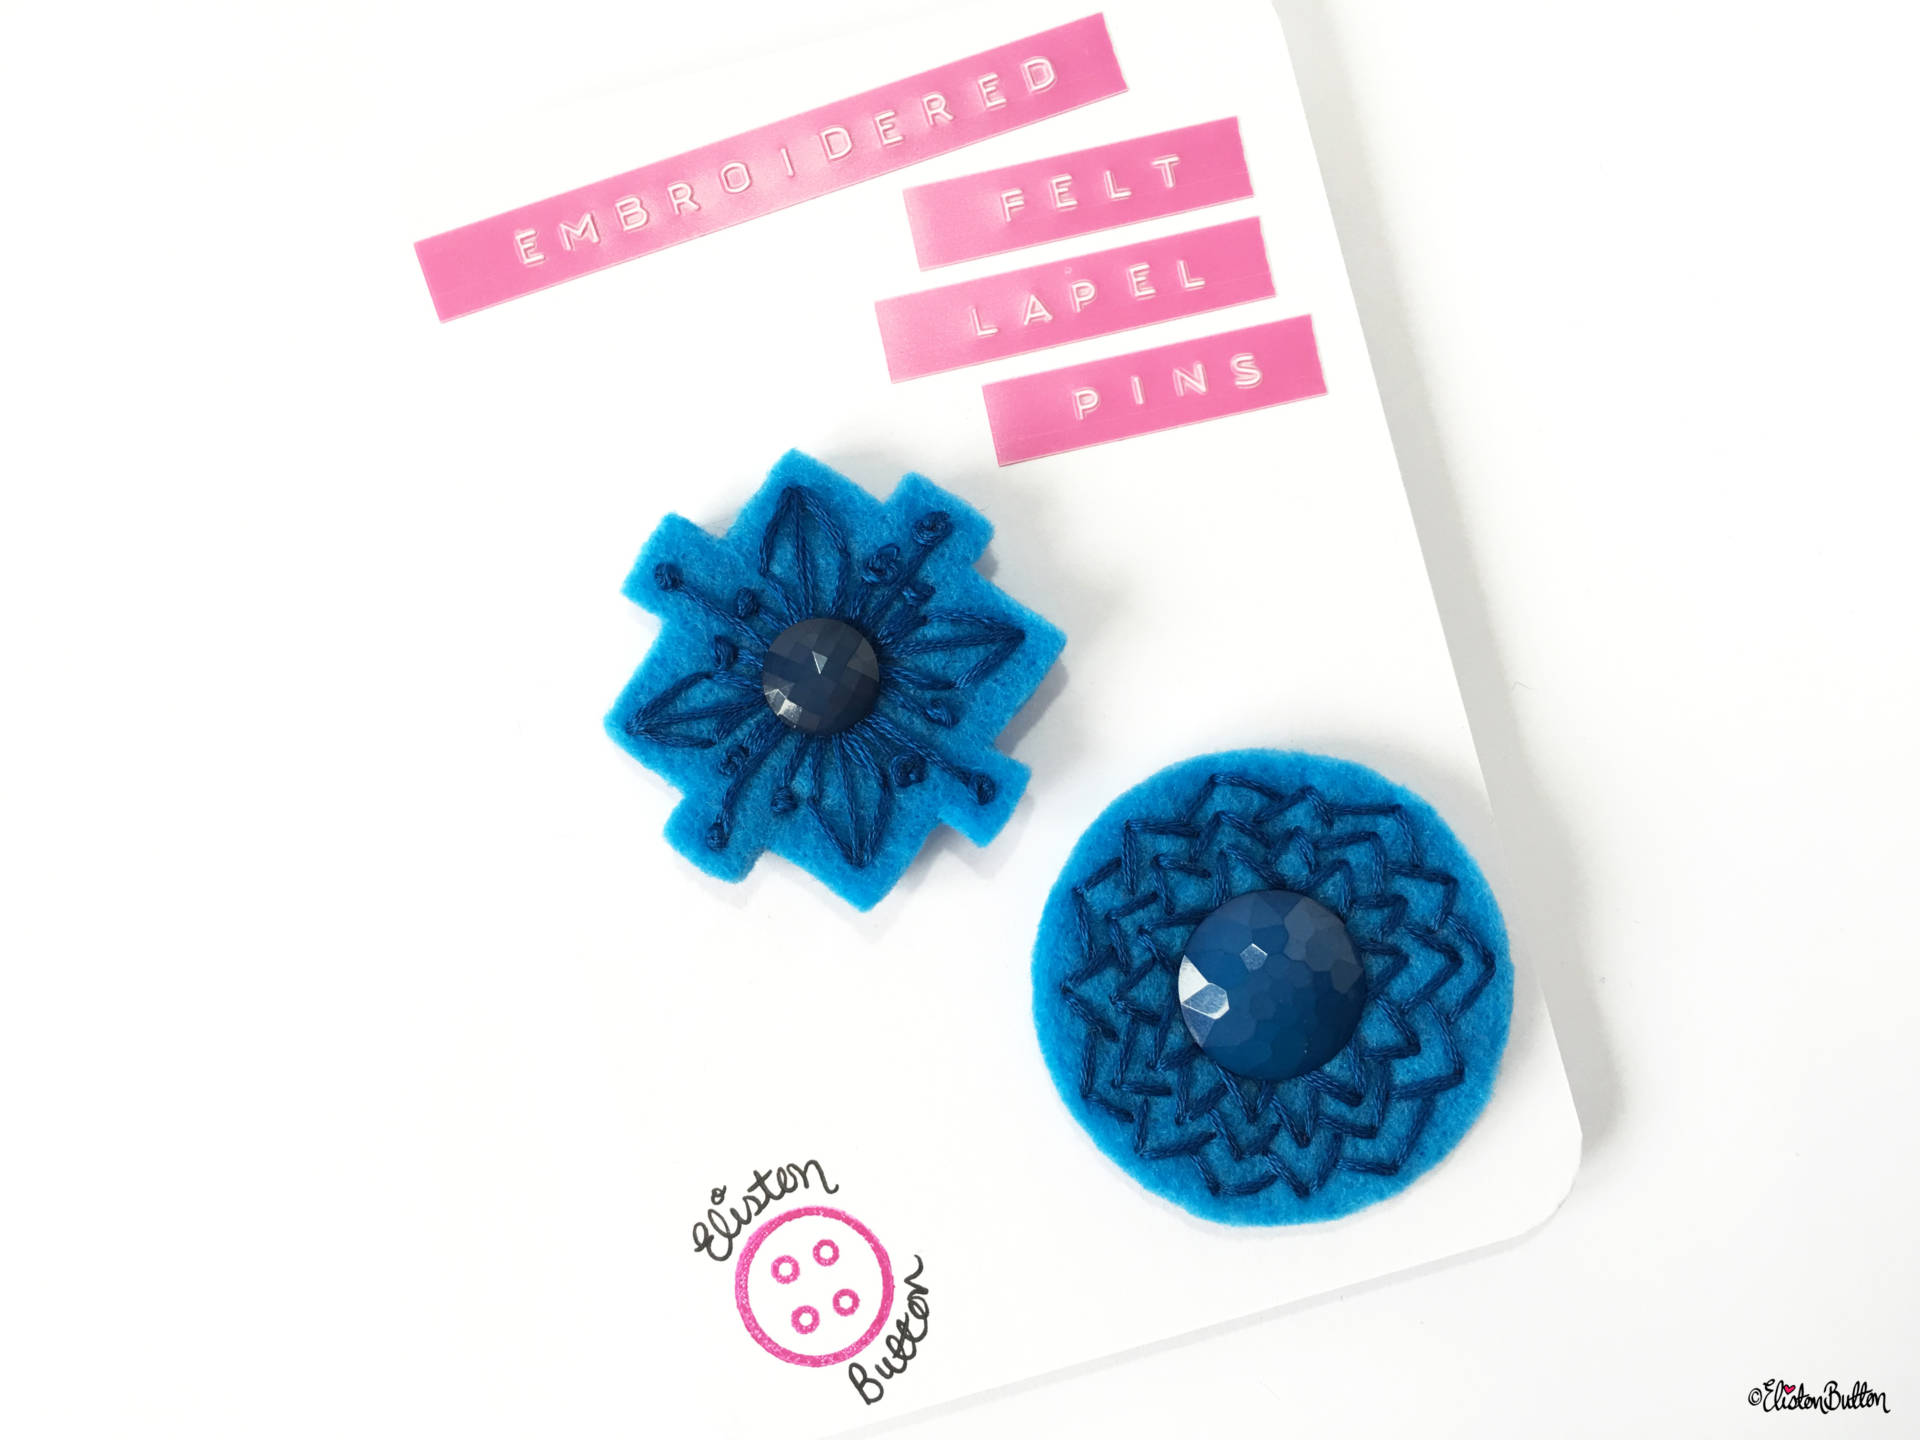 Blue and Teal Embroidered Felt Lapel Pins - Set of 2 on Backing Card - Create 30 - No. 5, 6, & 7 - Embroidered Felt Lapel Pins at www.elistonbutton.com - Eliston Button - That Crafty Kid – Art, Design, Craft & Adventure.